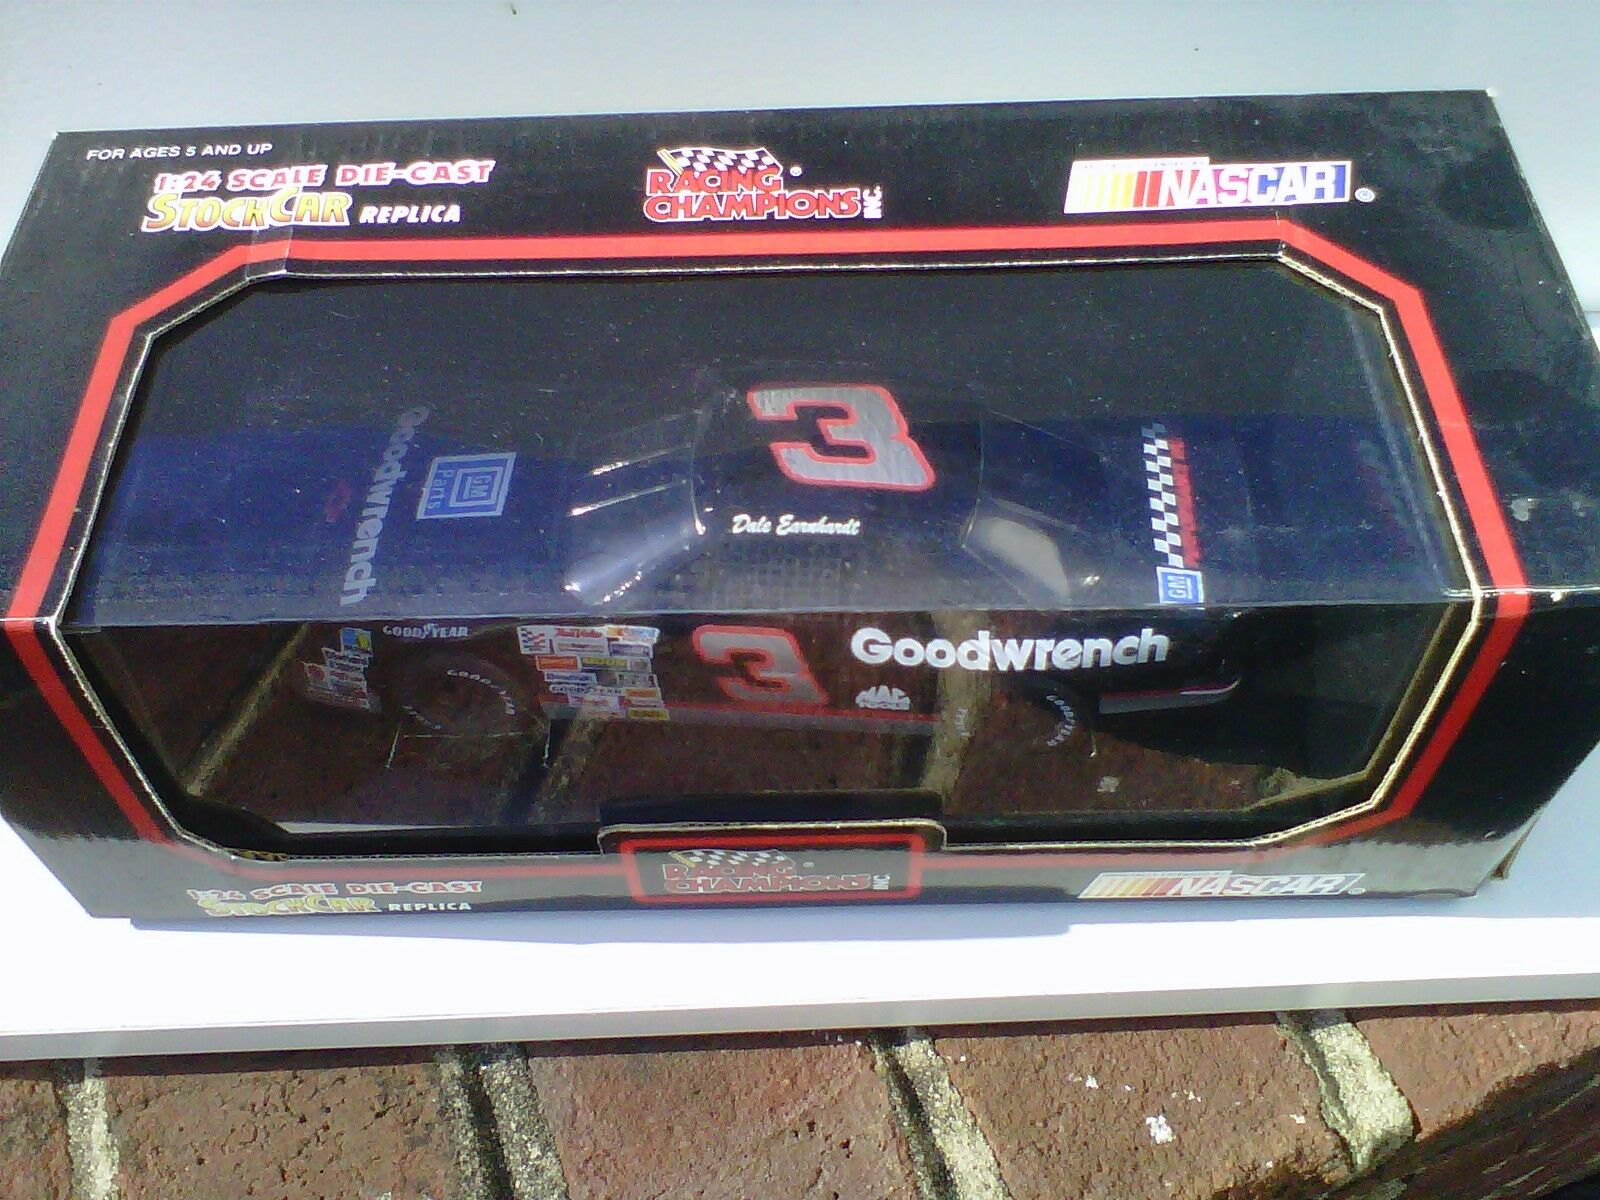 1992 Dale Earnhardt 1 24 Black Box Racing Champion  1 of very first diecast made